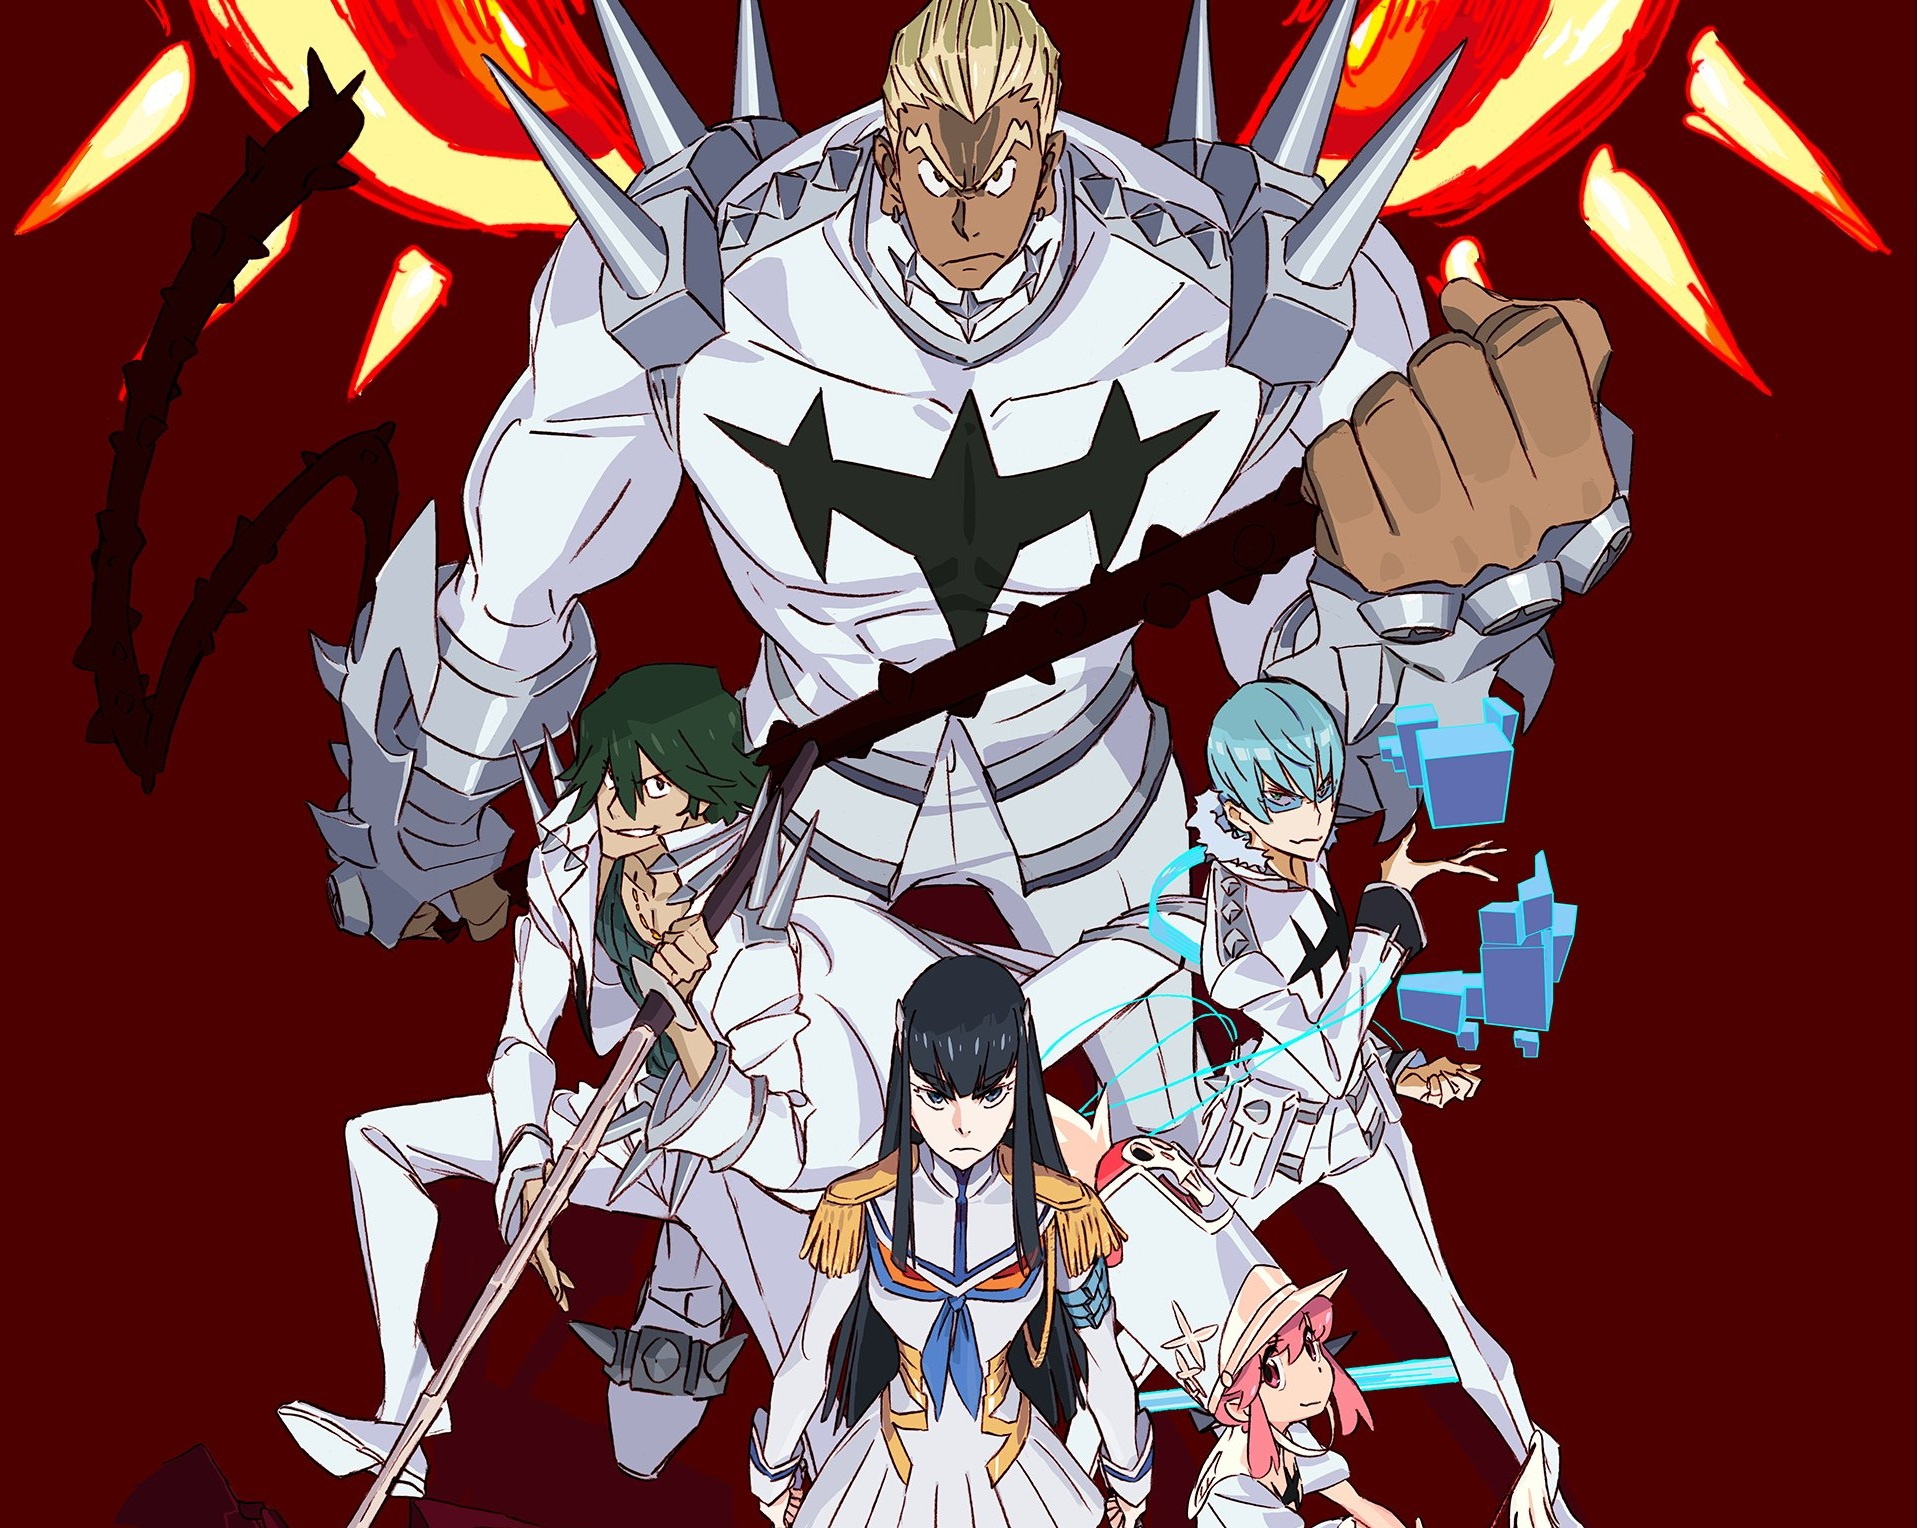 Teaser trailer reveals Kill la Kill game coming from Arc System Works